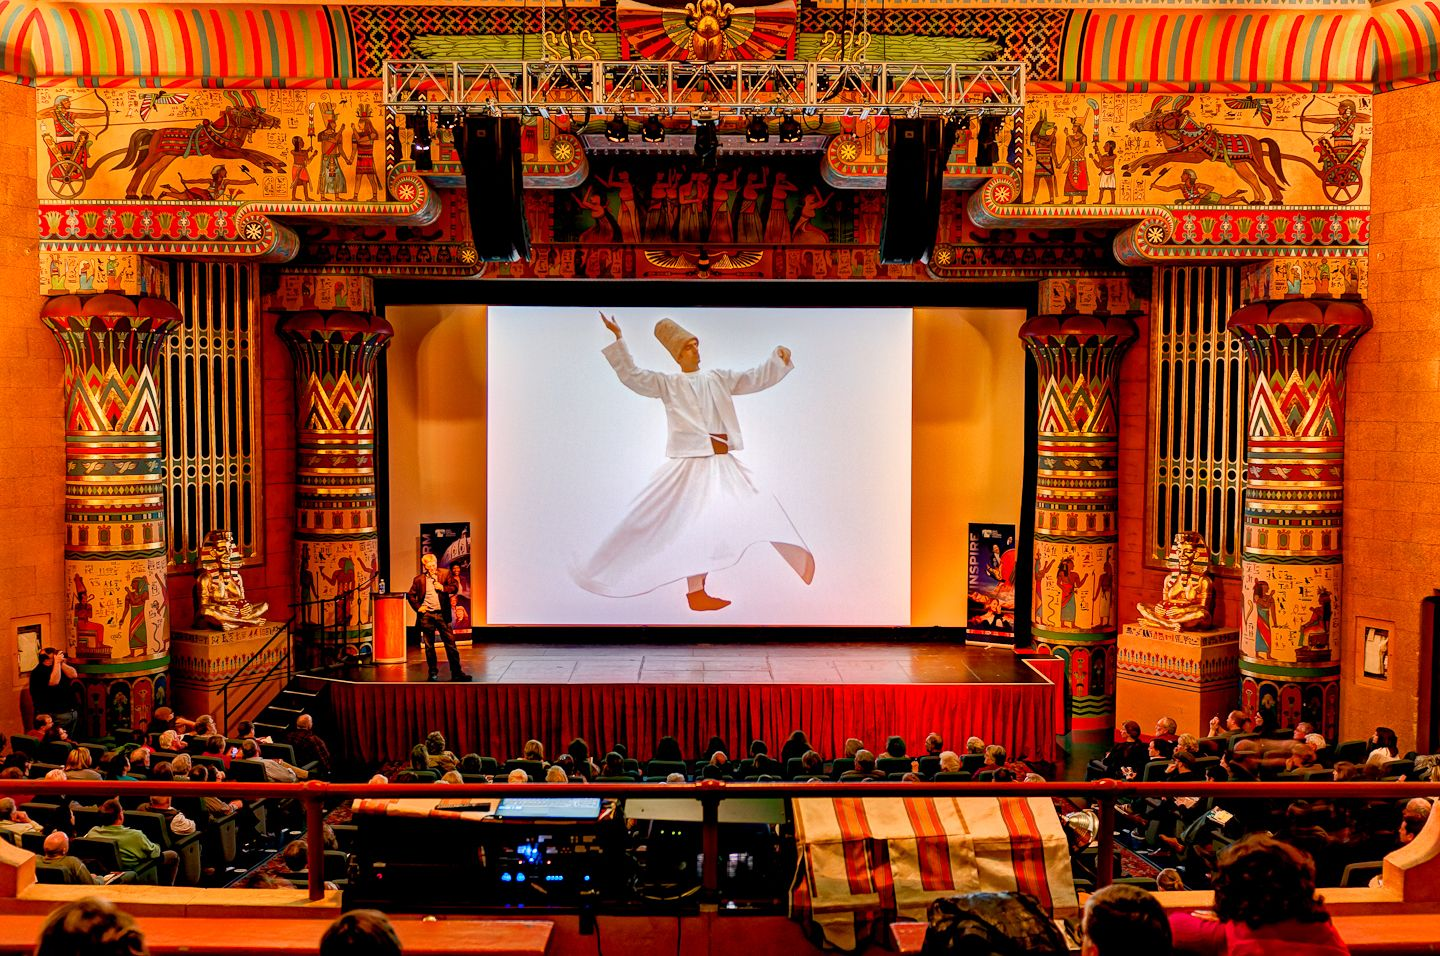 inside the Egyptian theatre in boise